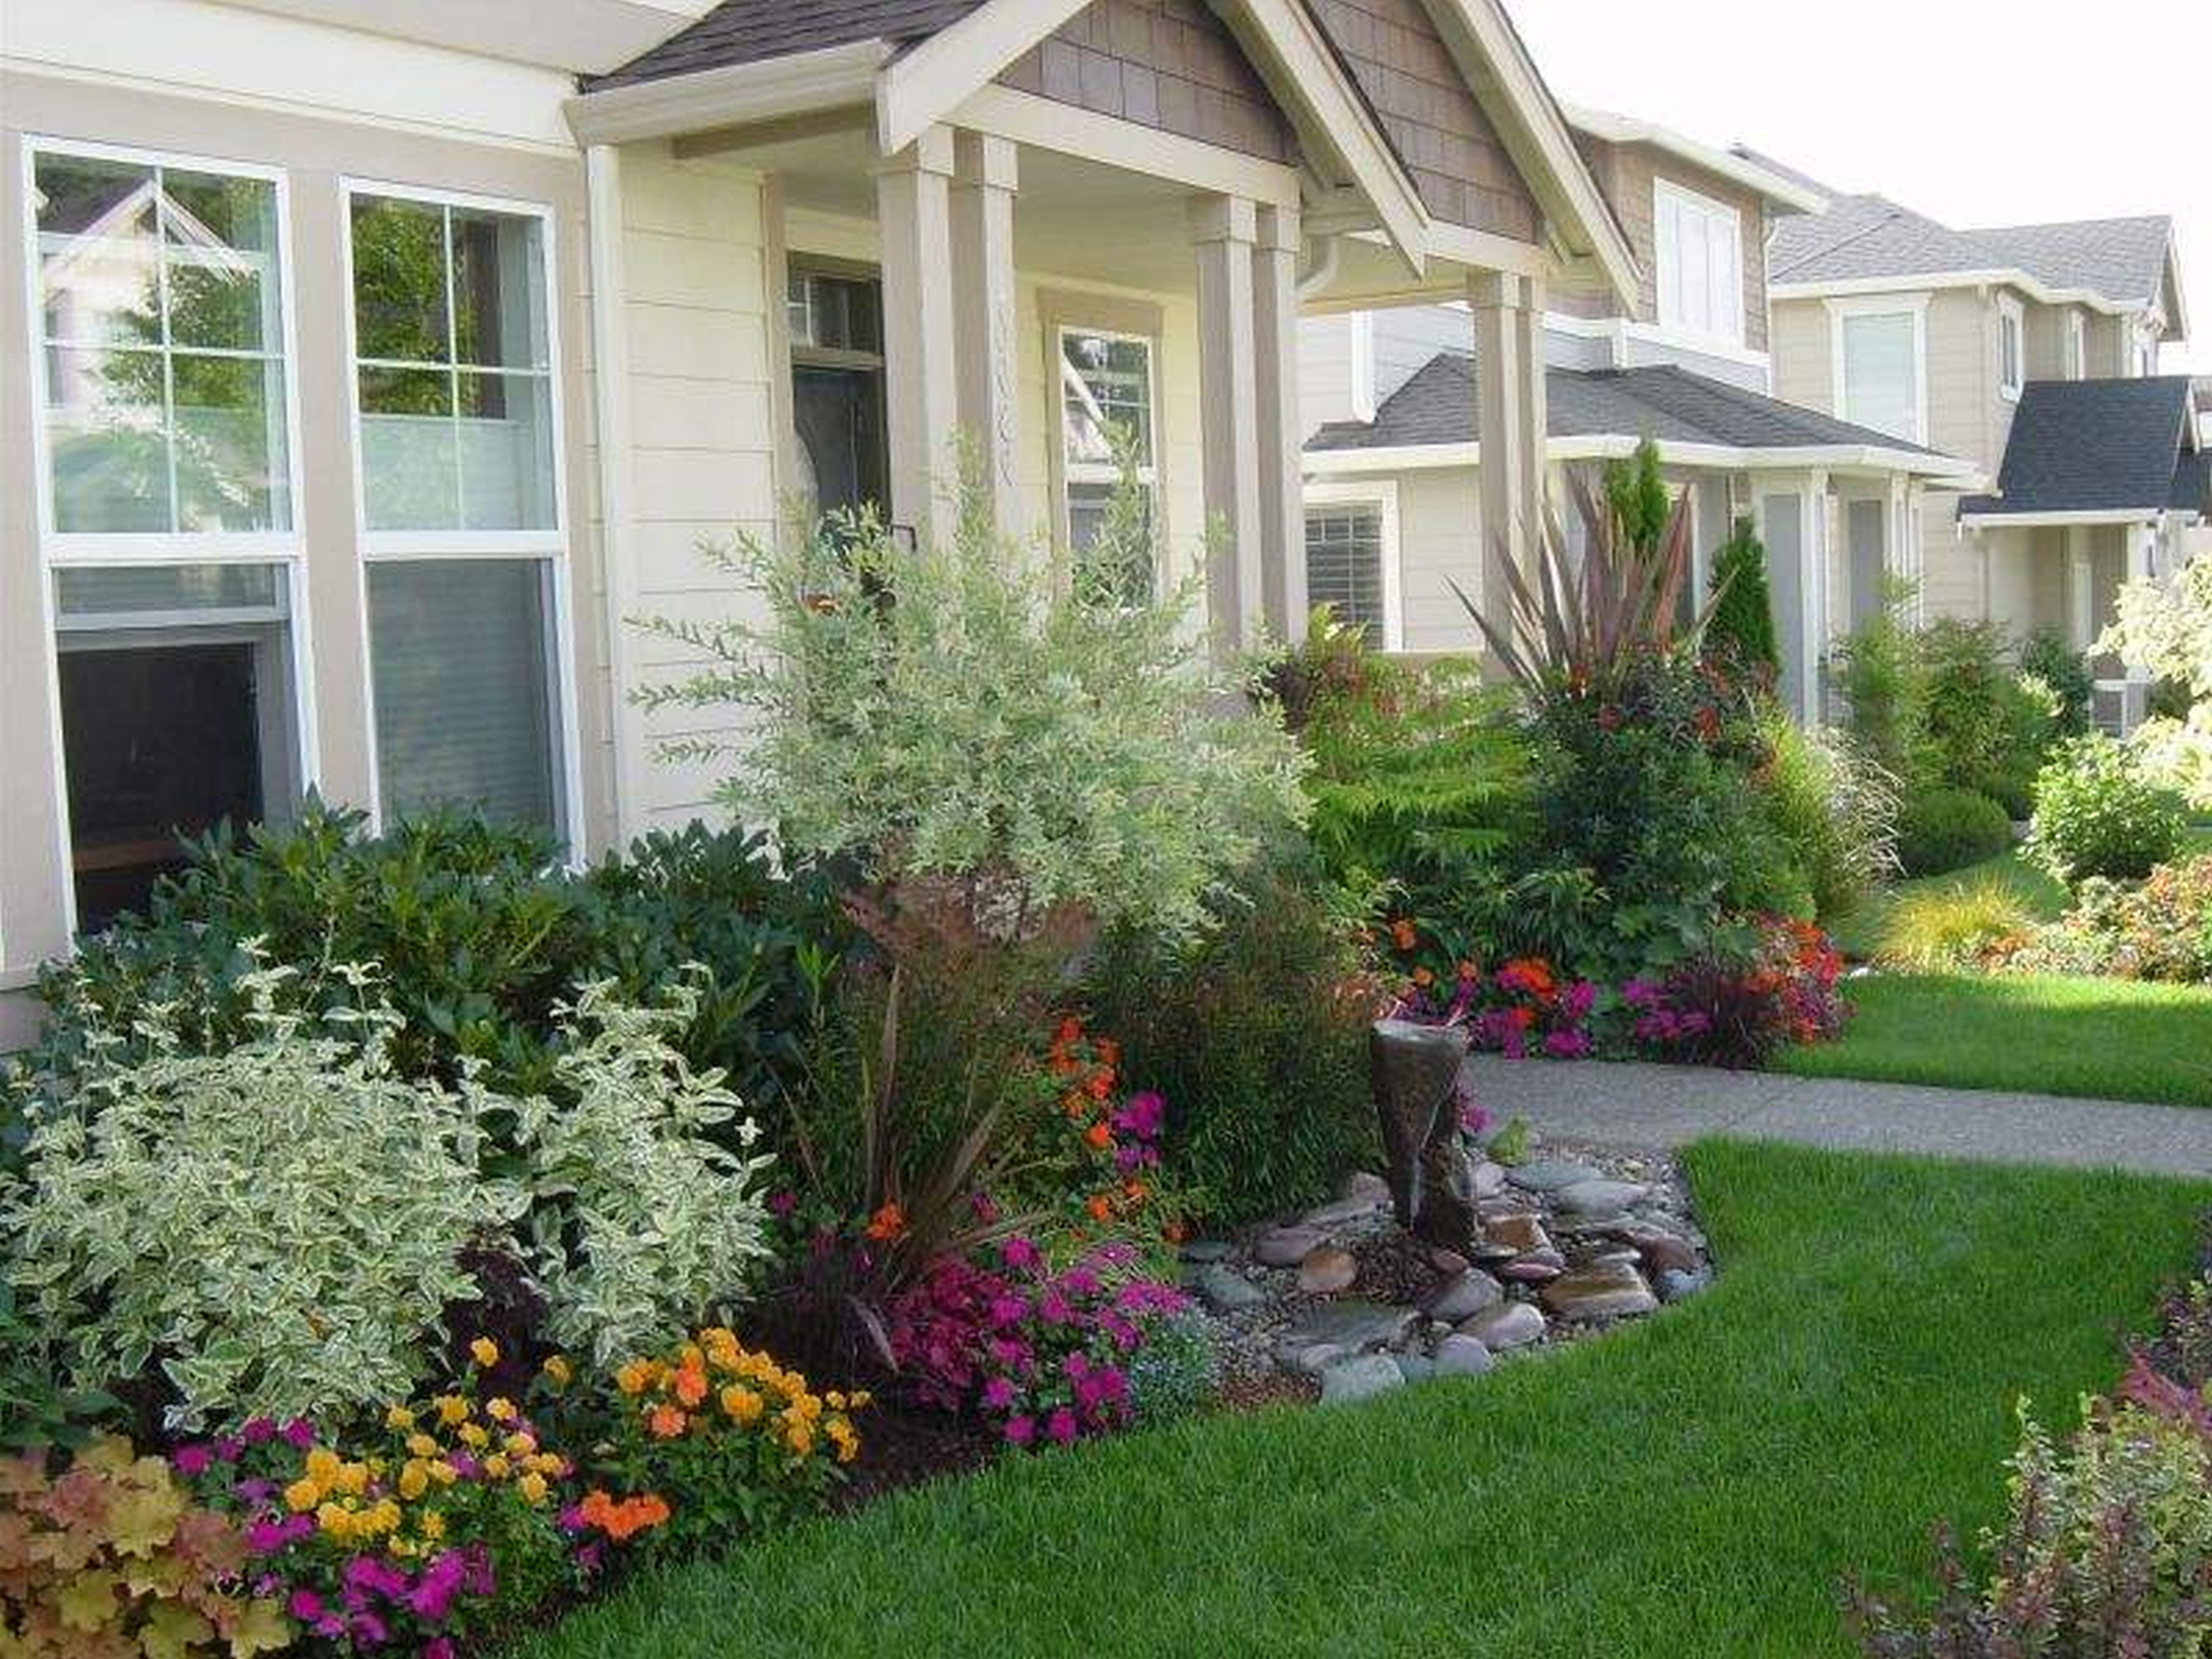 10 Garden Ideas For Front Of House Most Of The Elegant And Also Lovely Garden Front Of House Small Front Yard Landscaping Front House Landscaping